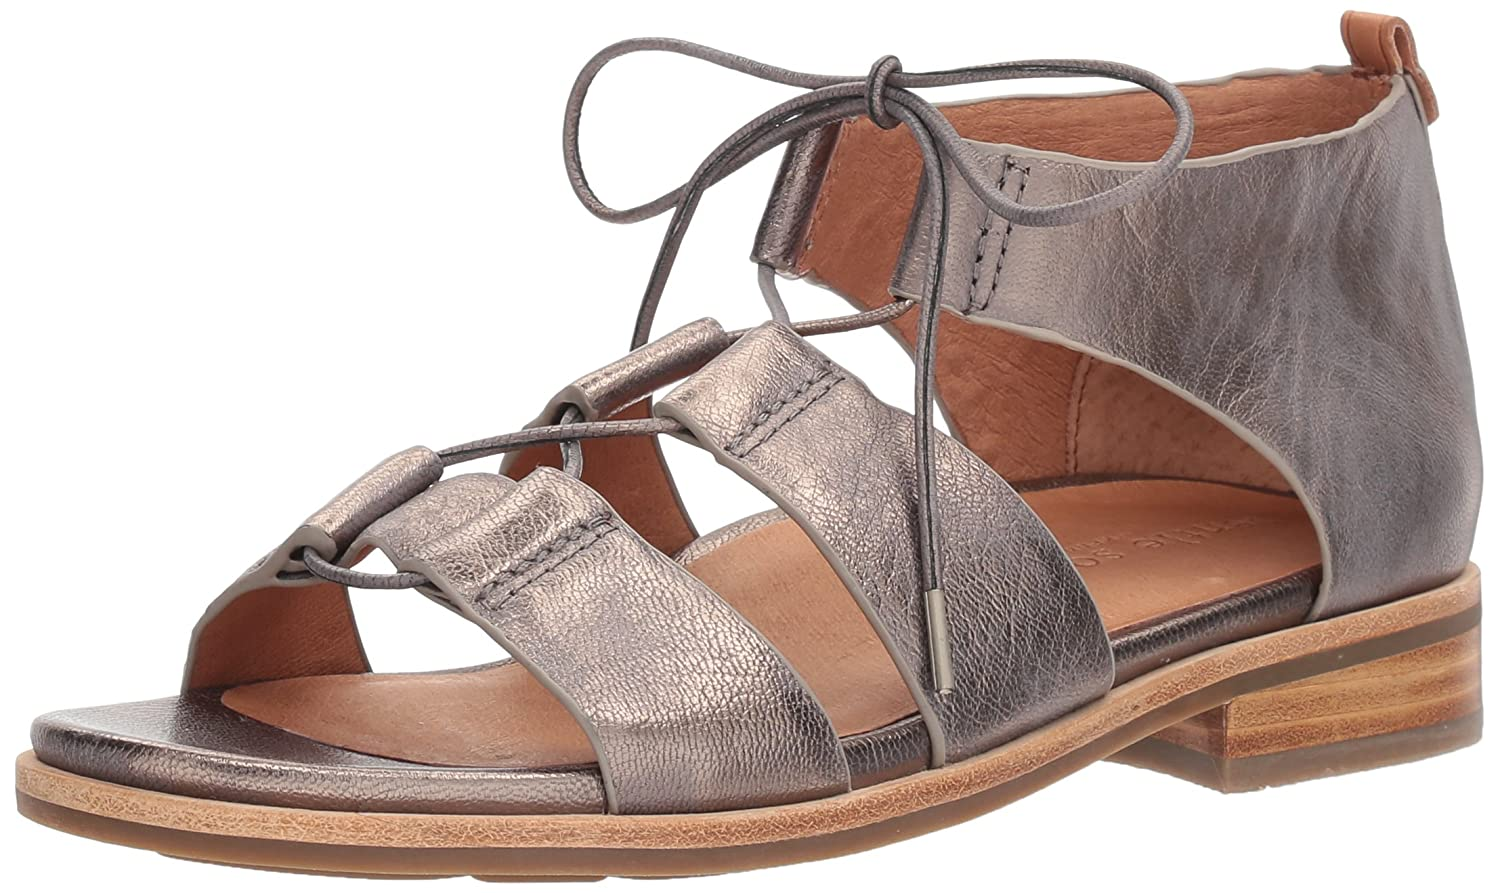 Gentle Souls Women's Fina Lace-up Flat Sandal B078F5H5F1 6.5 B(M) US|Pewter